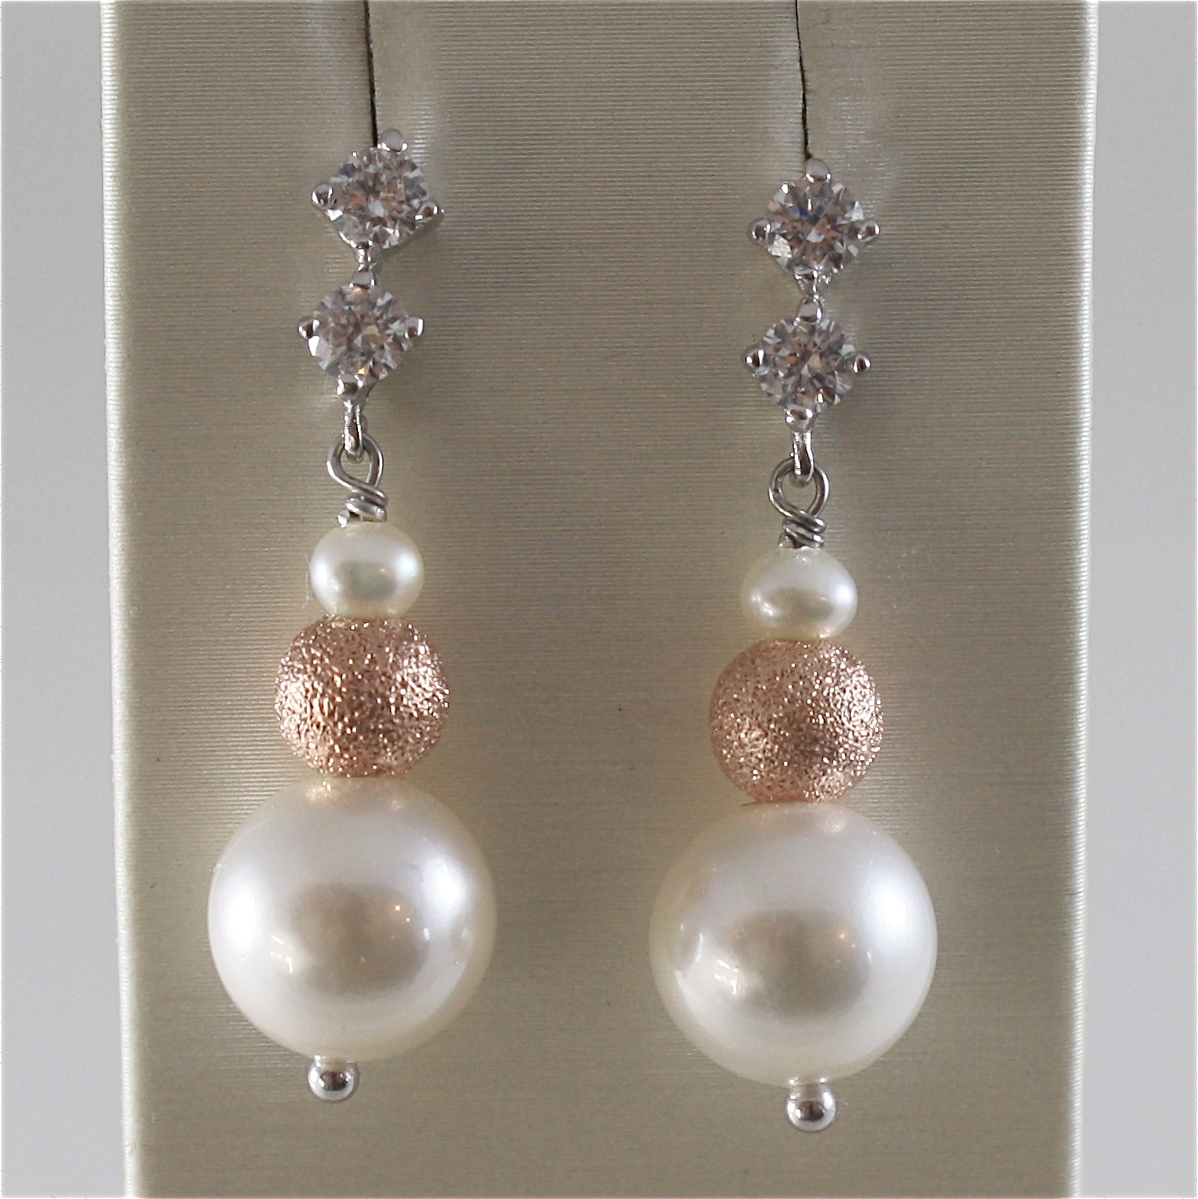 925 RODIUM SILVER EARRINGS WITH FW & SYNTHETIC PEARLS AND CRISTALS MADE IN ITALY